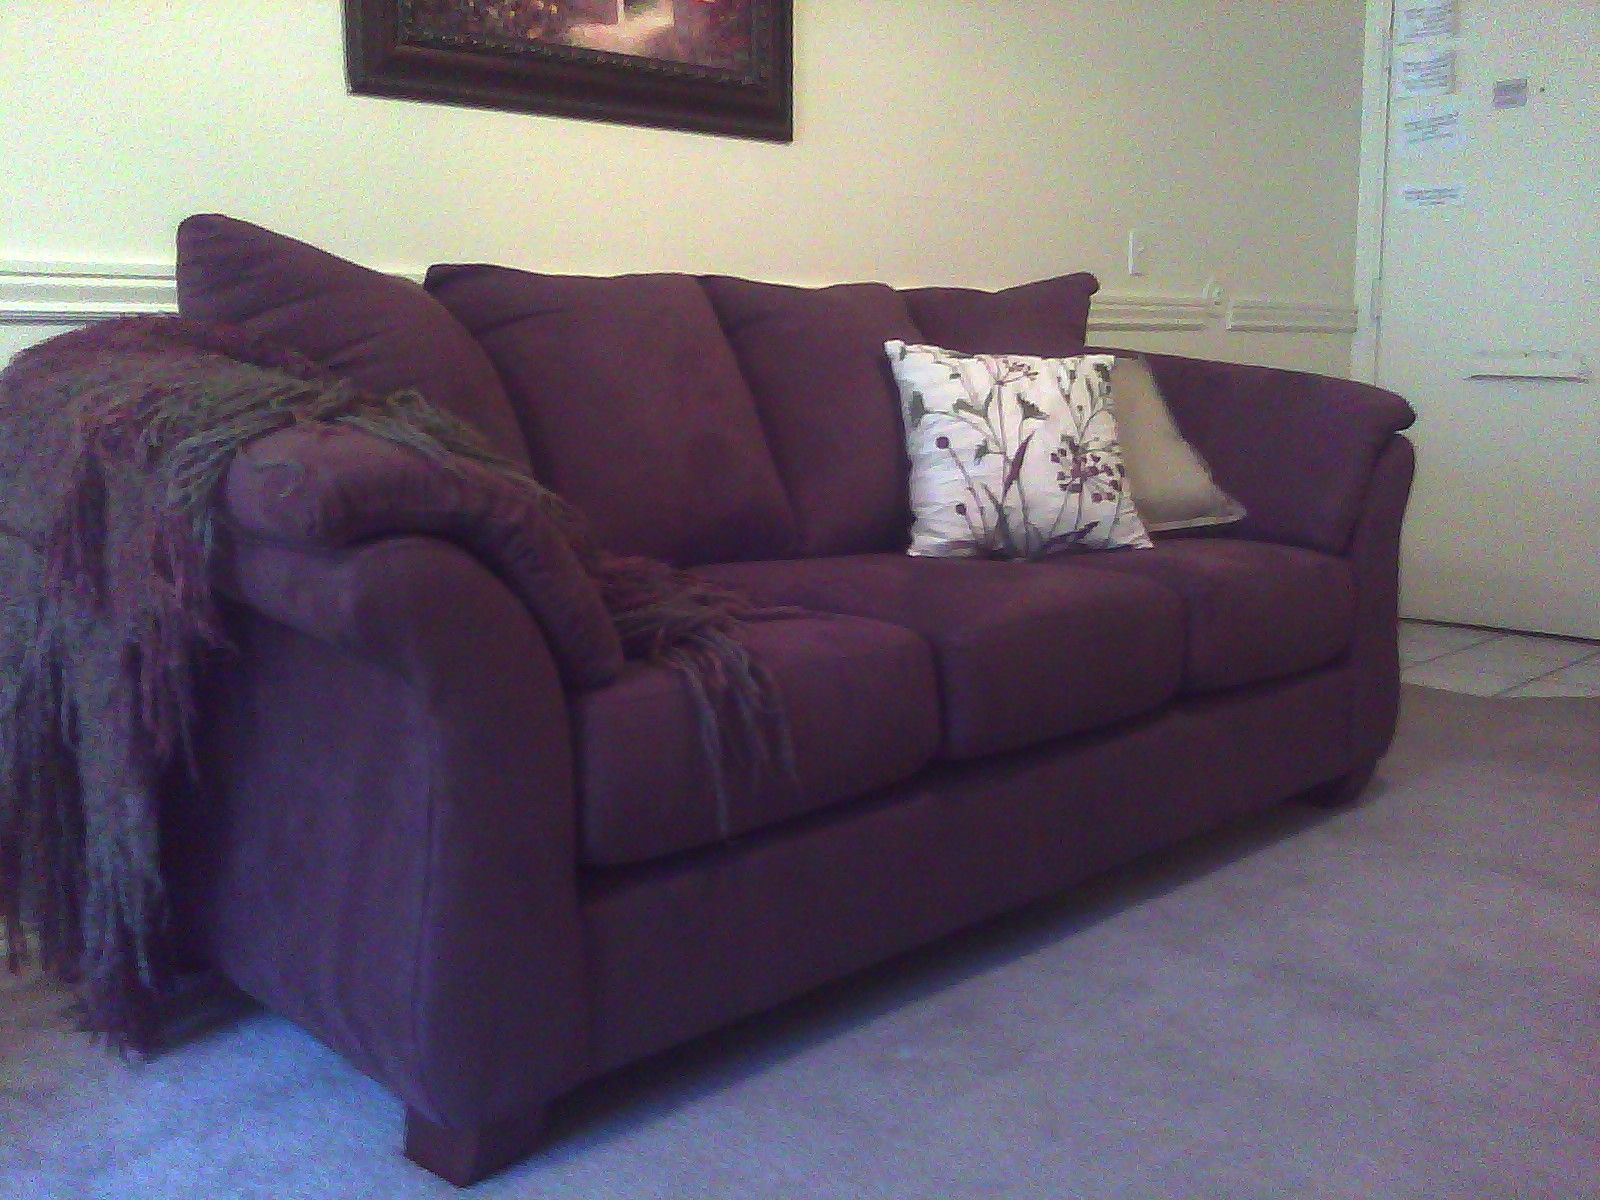 This is what my purple couch looks like at home